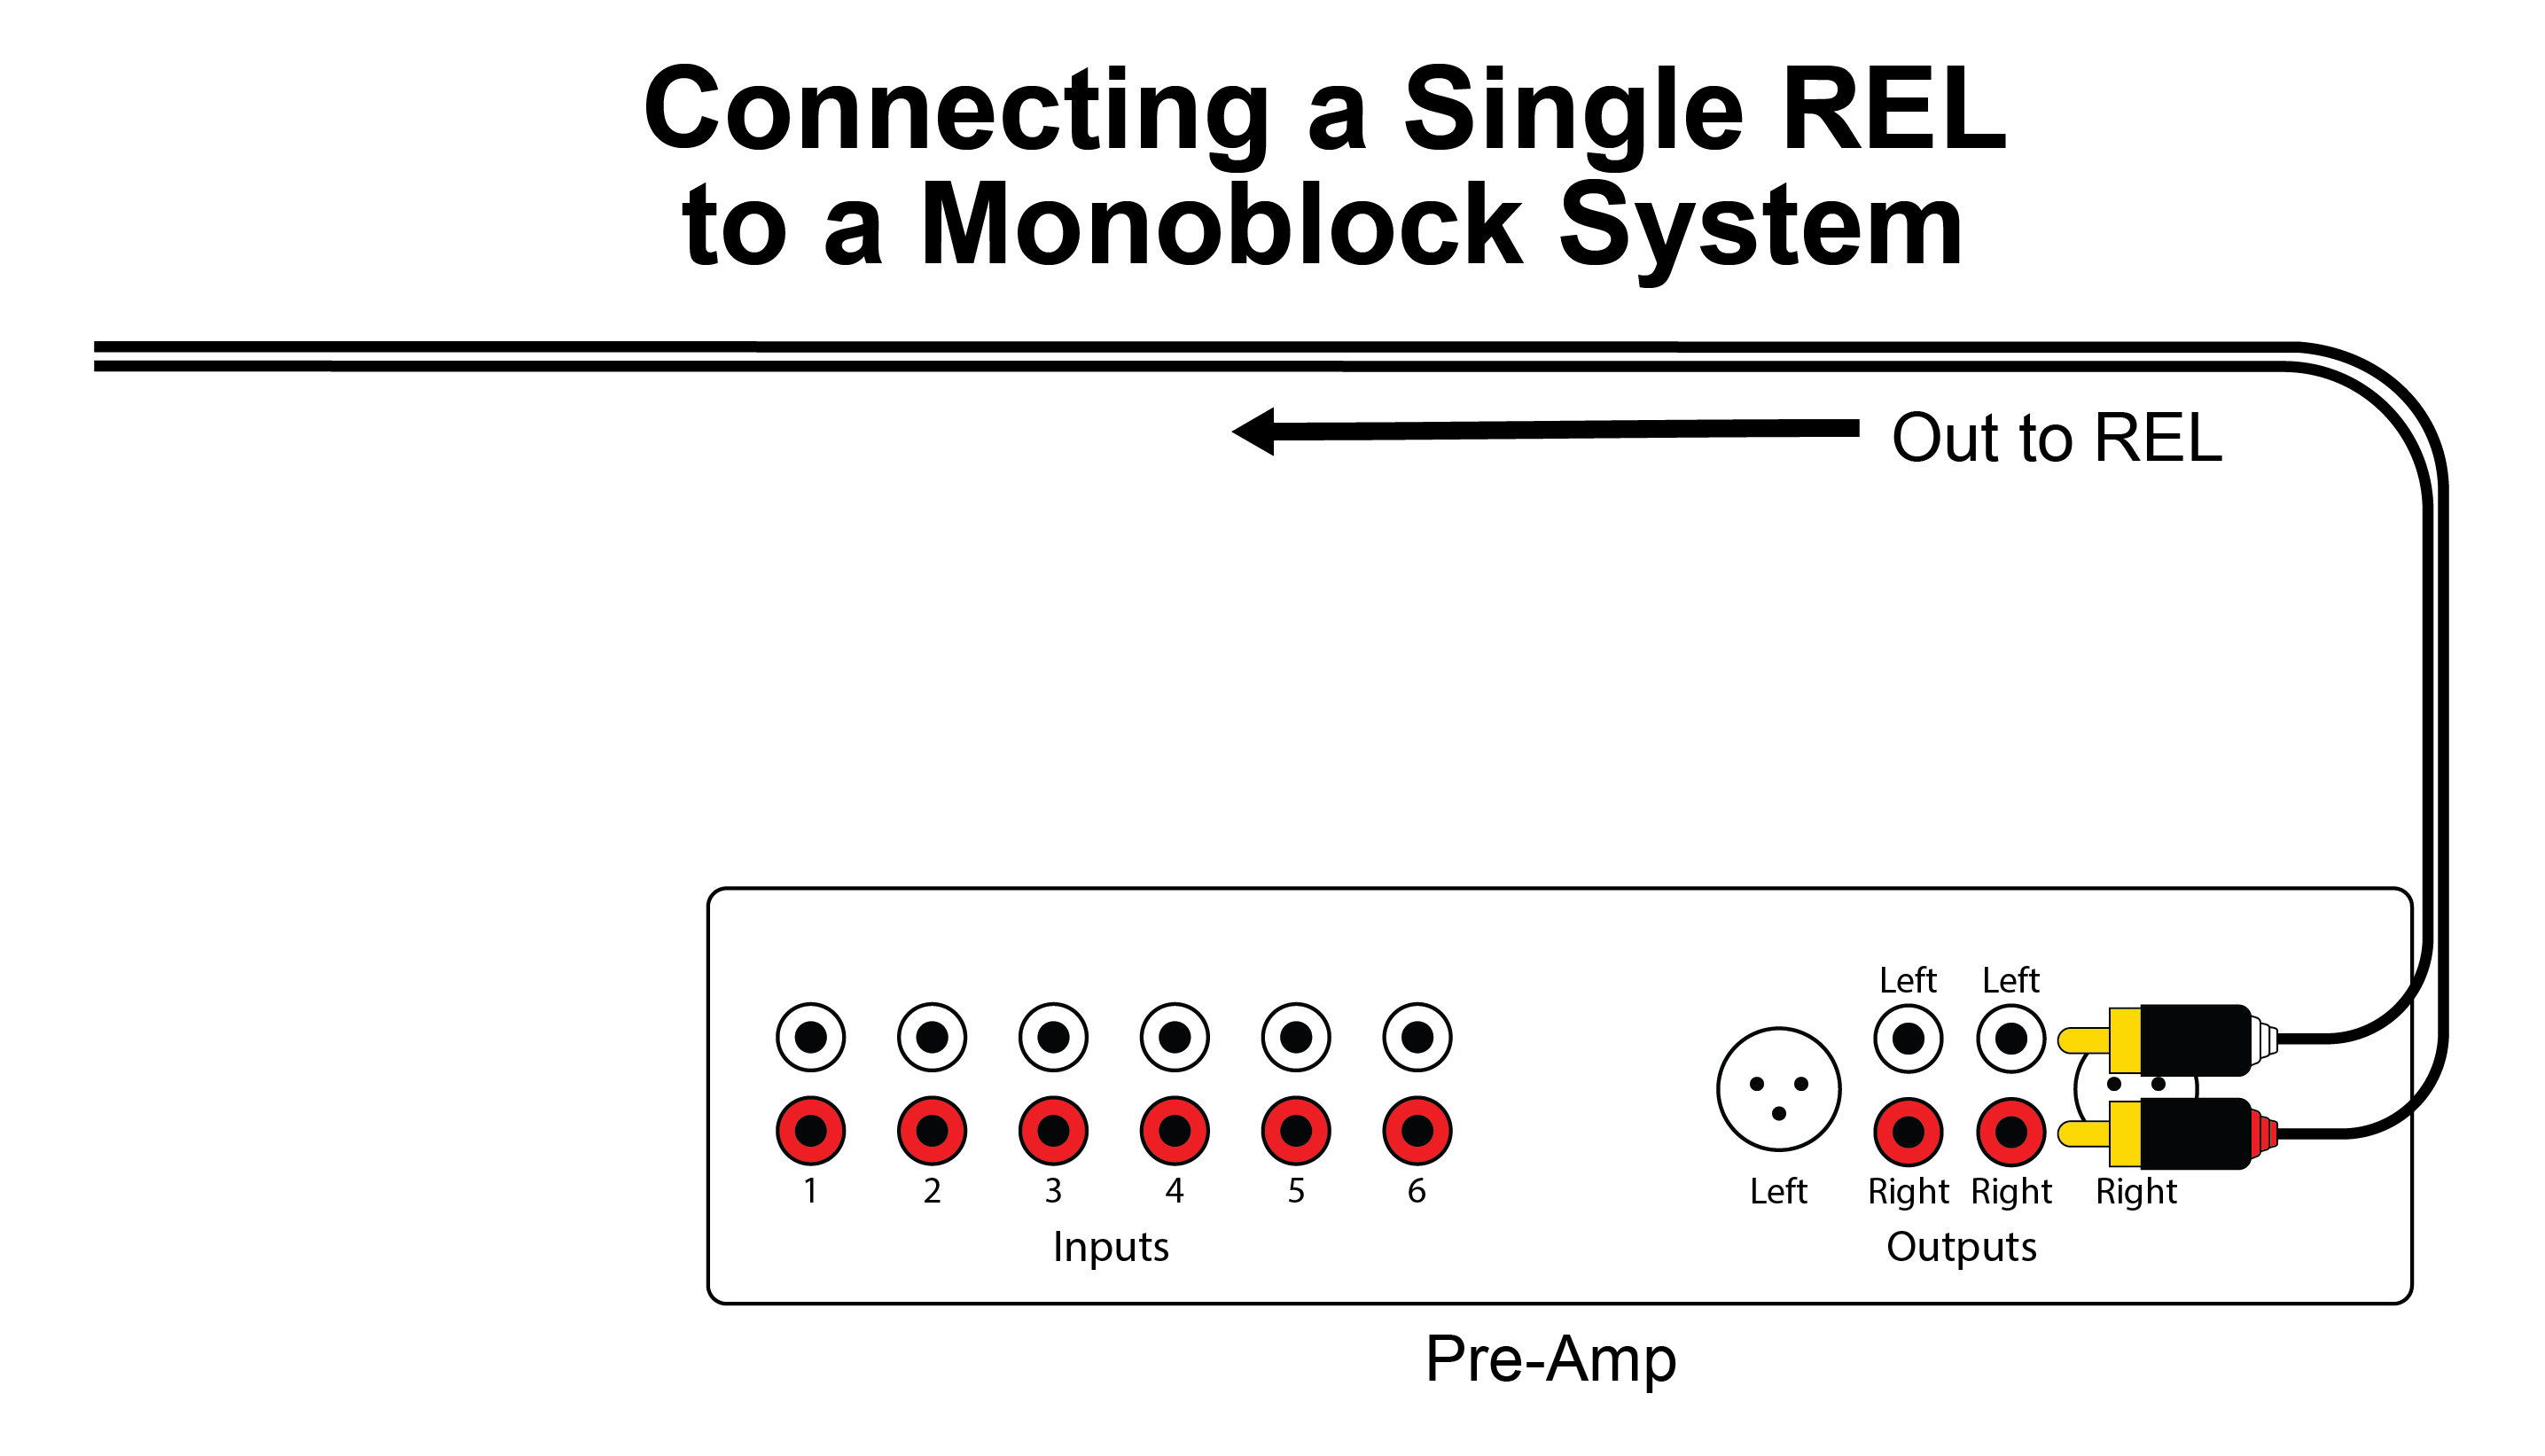 Single_REL_to_MonoBlock_Low_Level_Connection-01.jpg